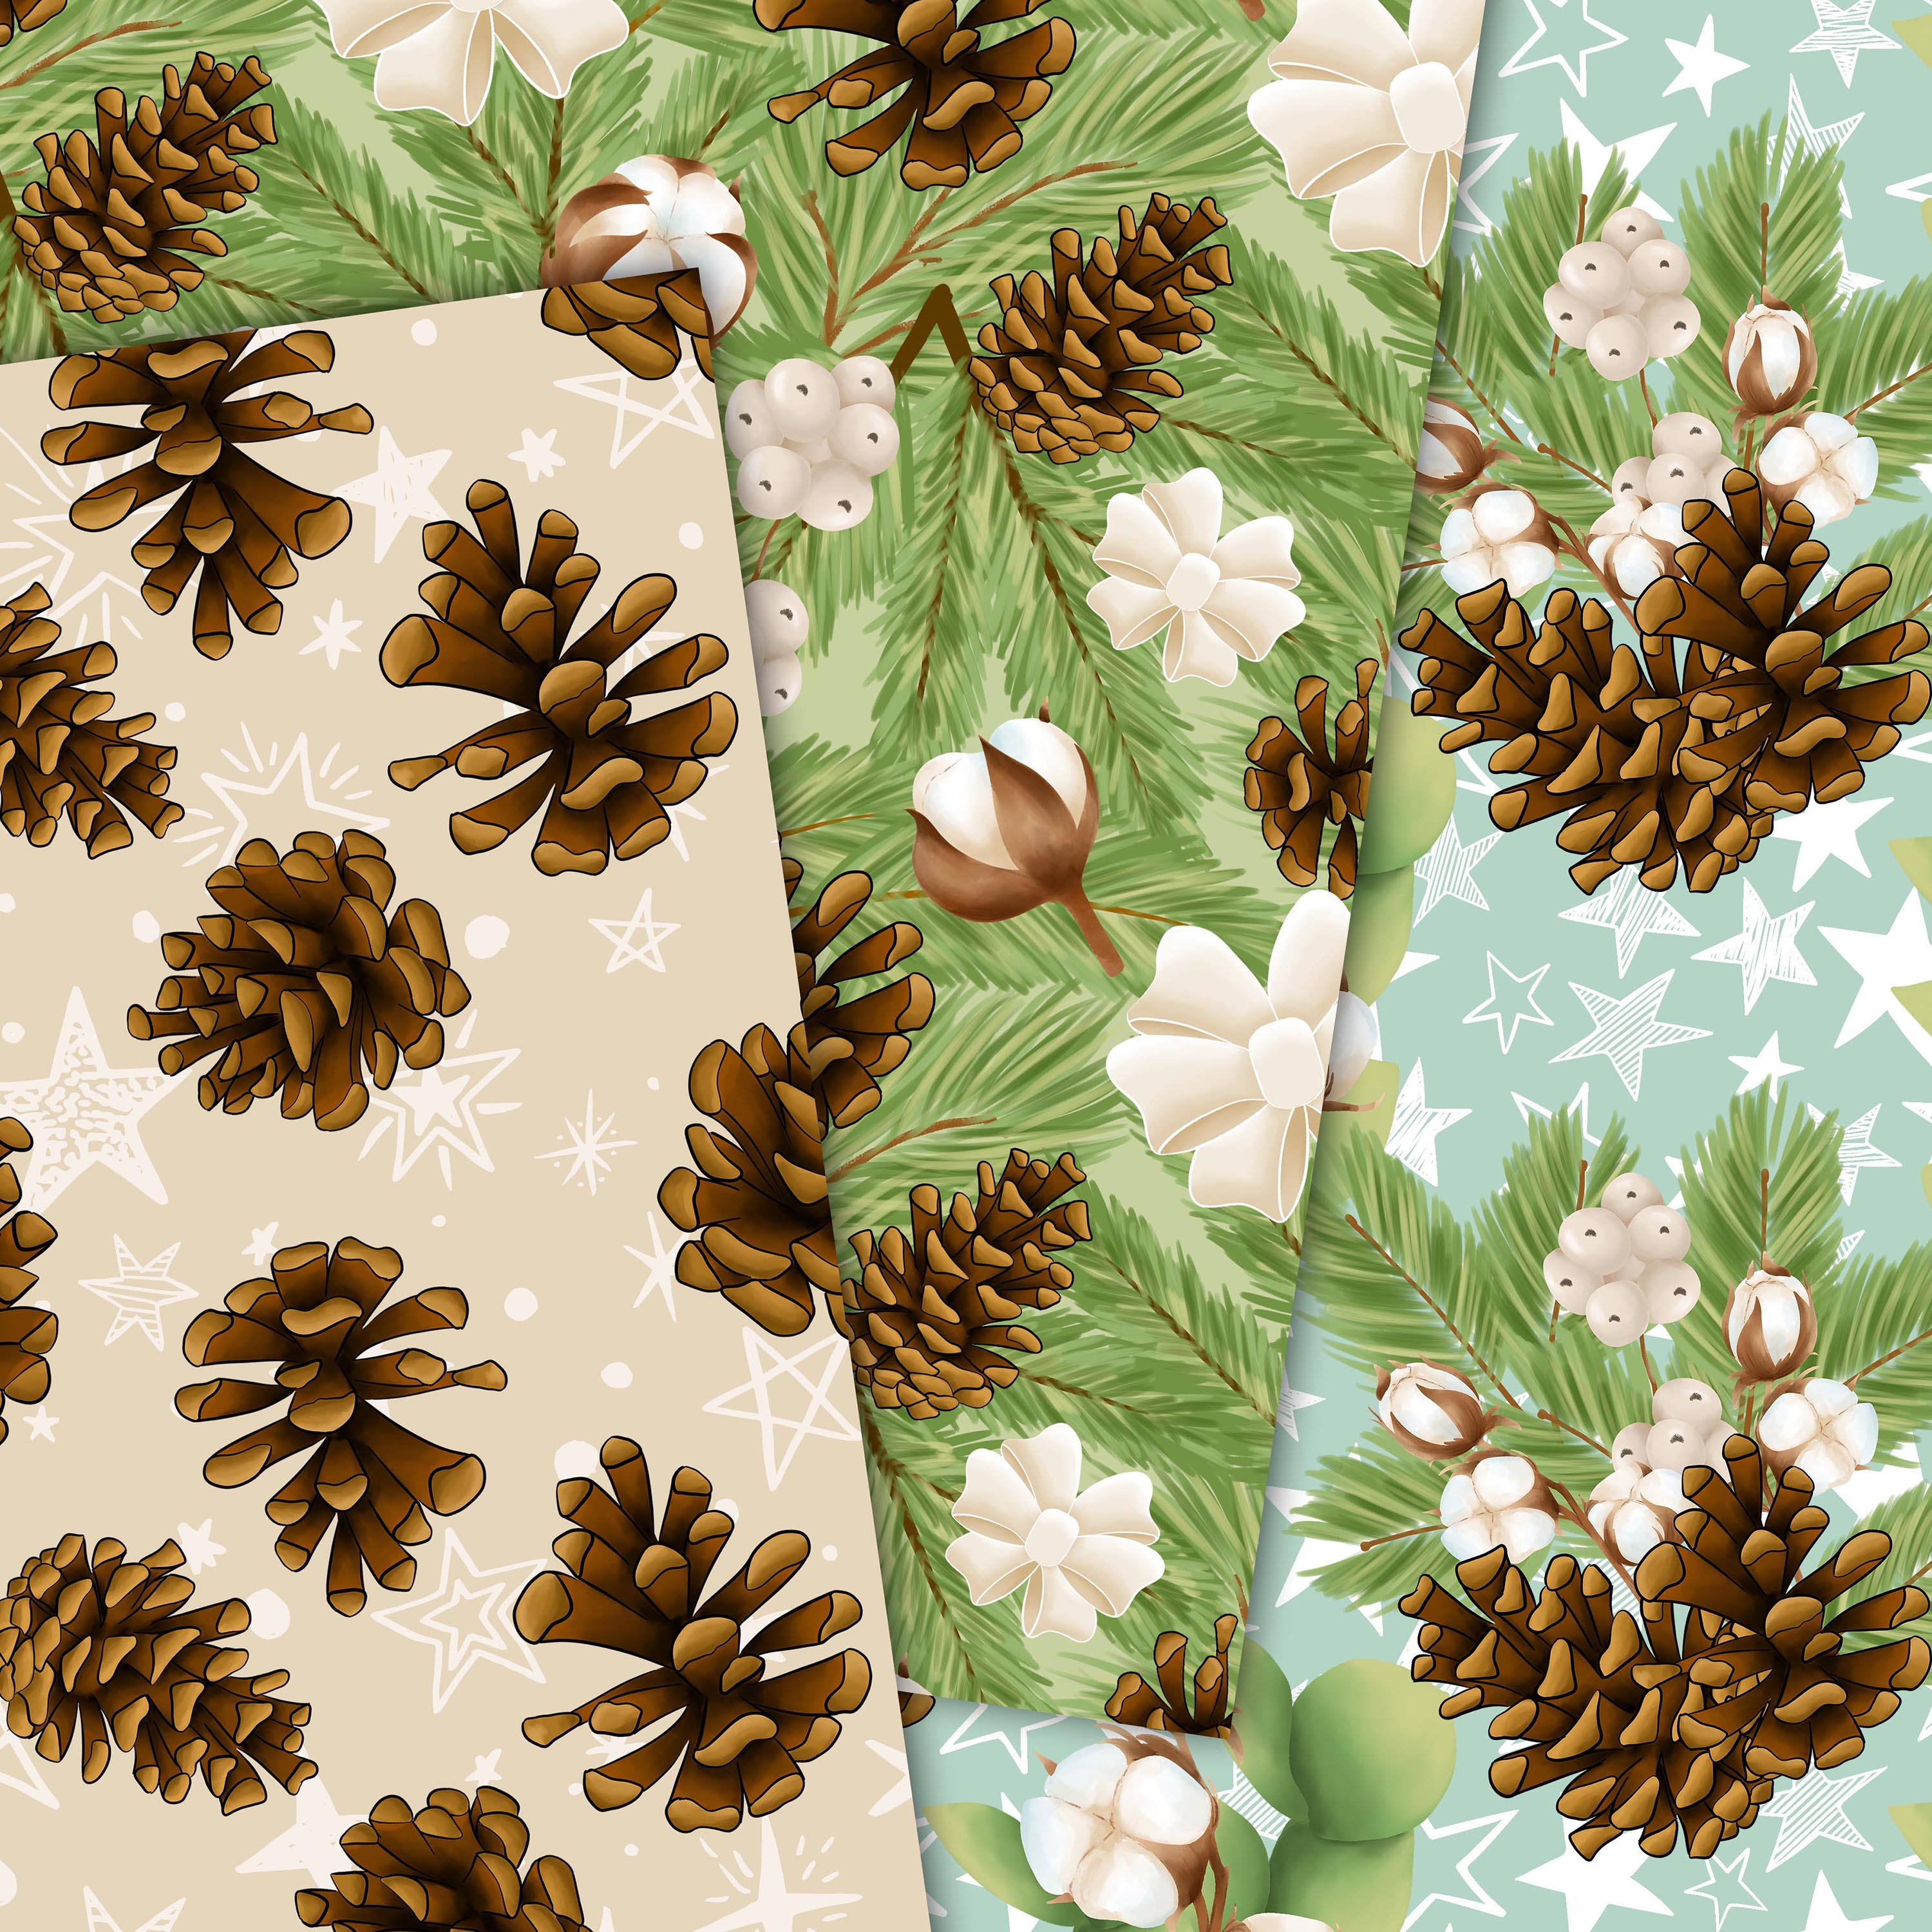 Cotton winter patterns example image 4